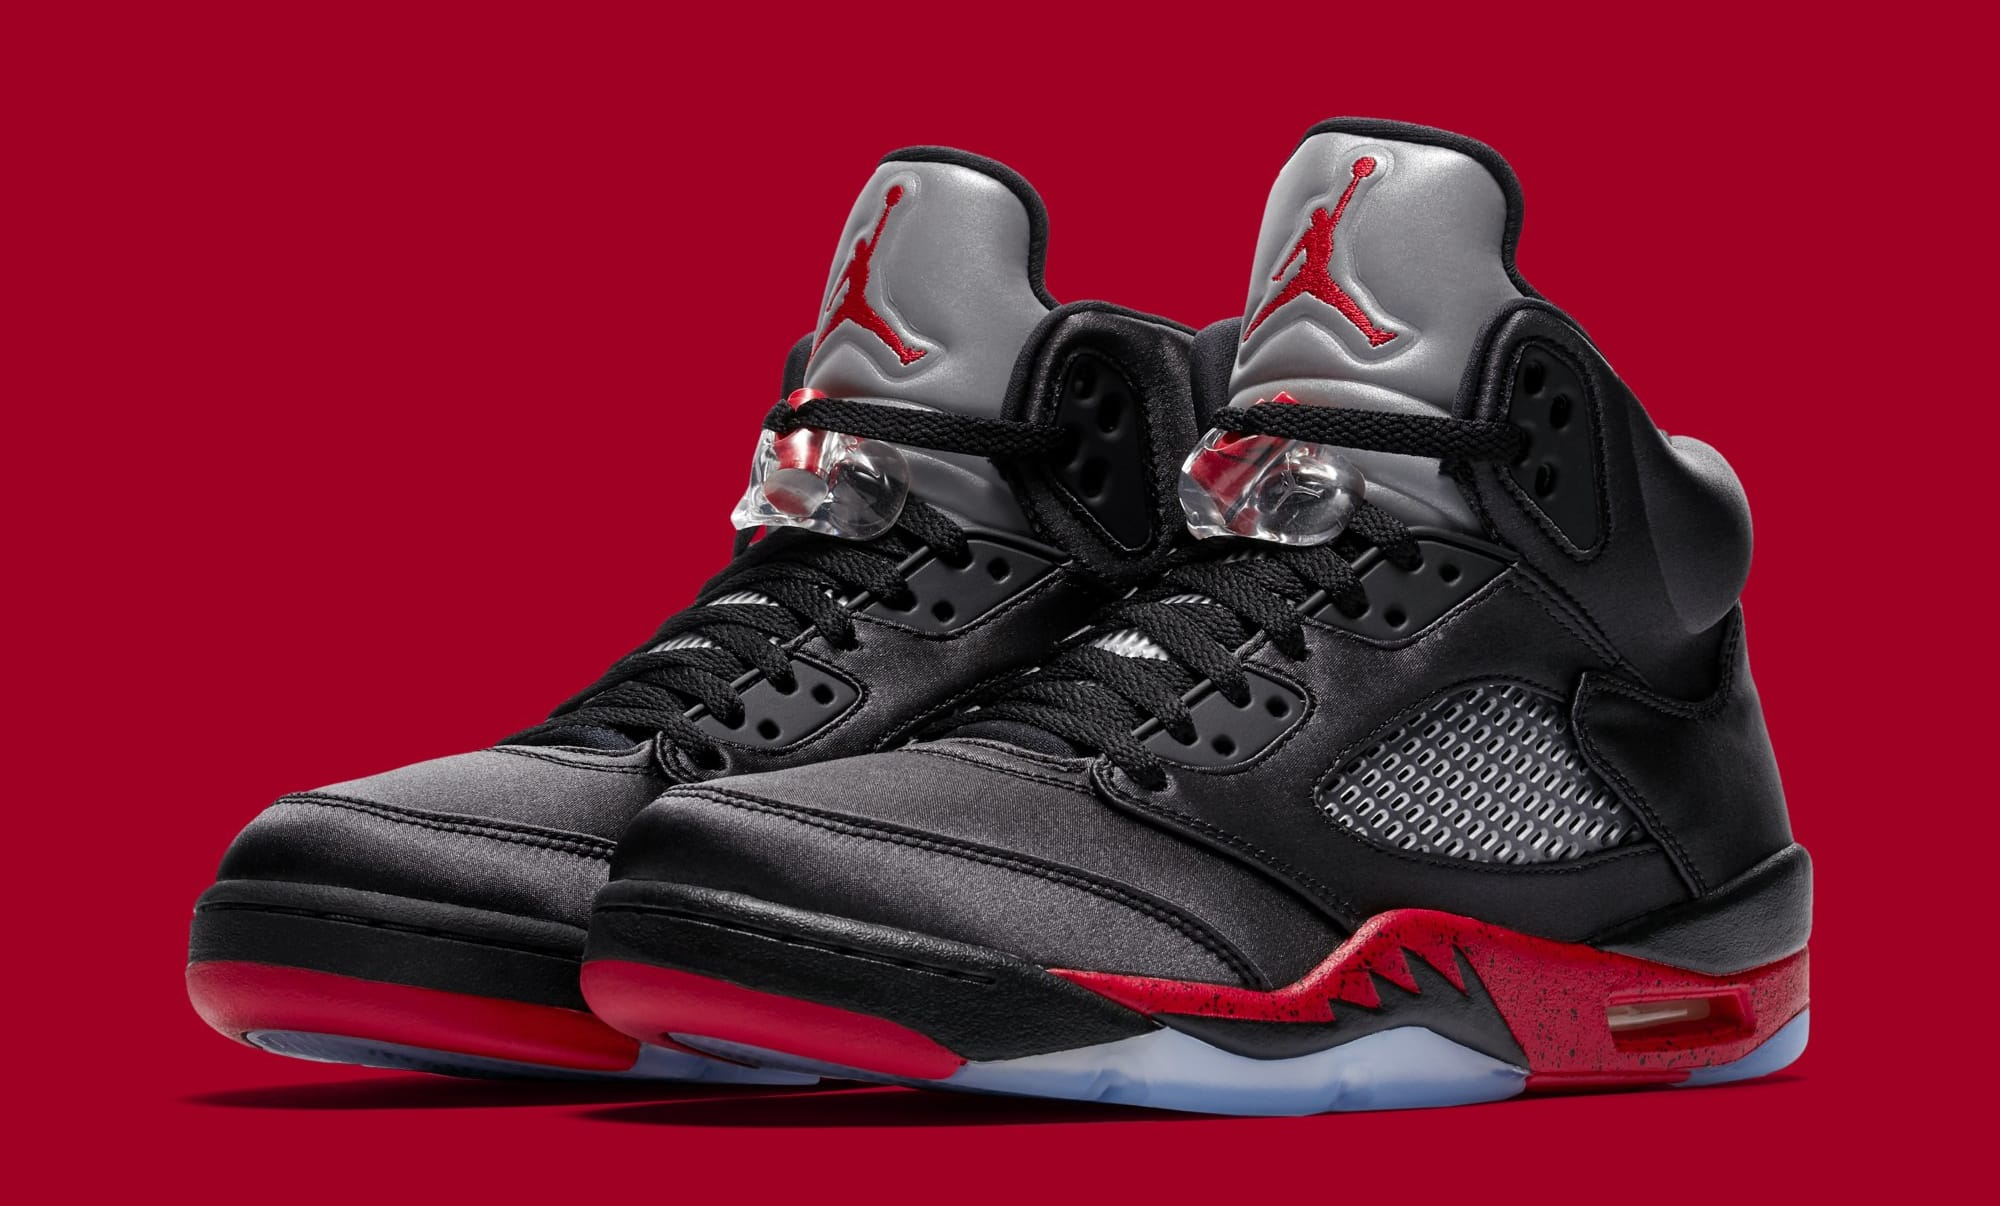 7c224bdd7a3a air jordan 5 Archives - Air 23 - Air Jordan Release Dates ...